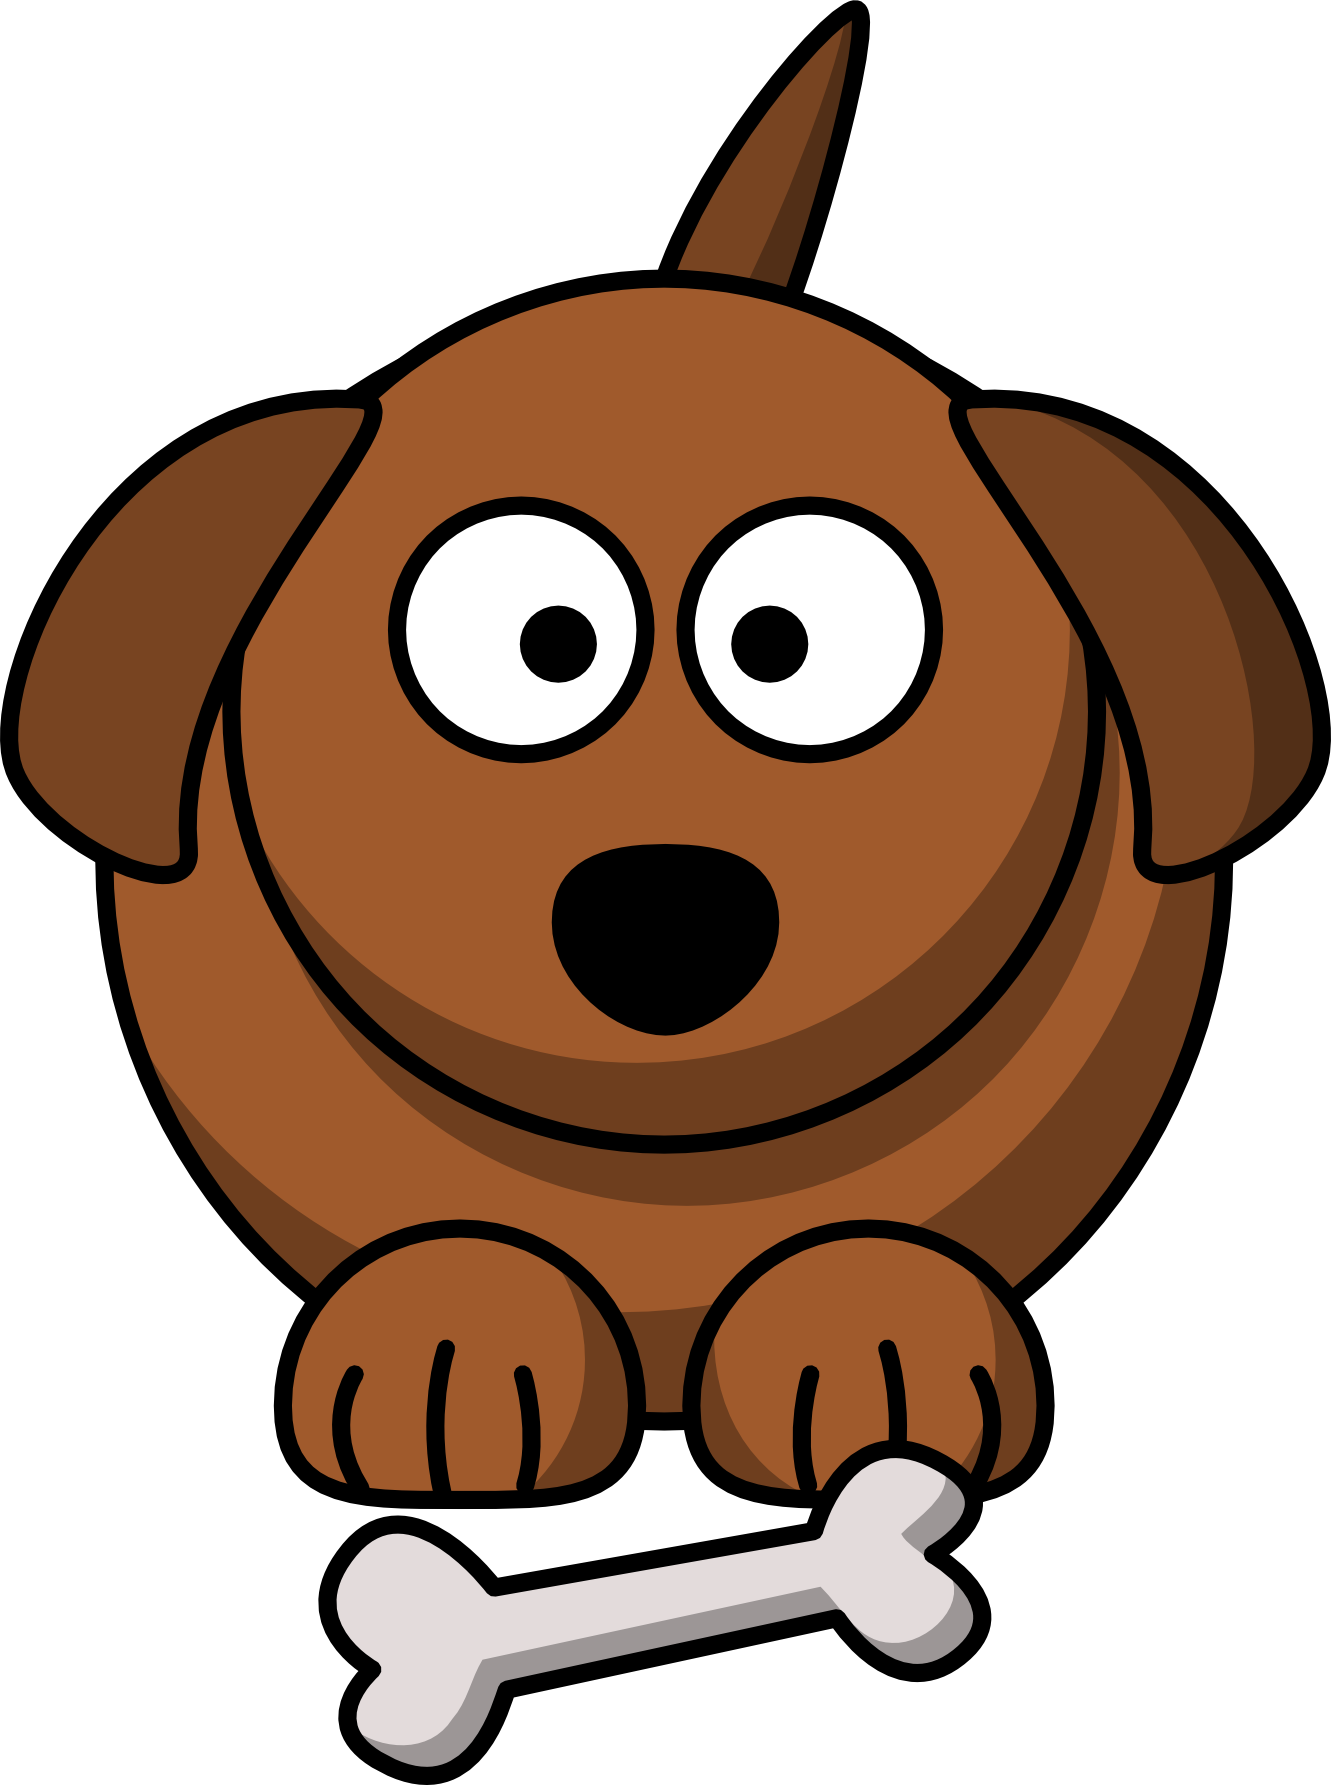 Christmas clipart dog. Dogs svg free rr